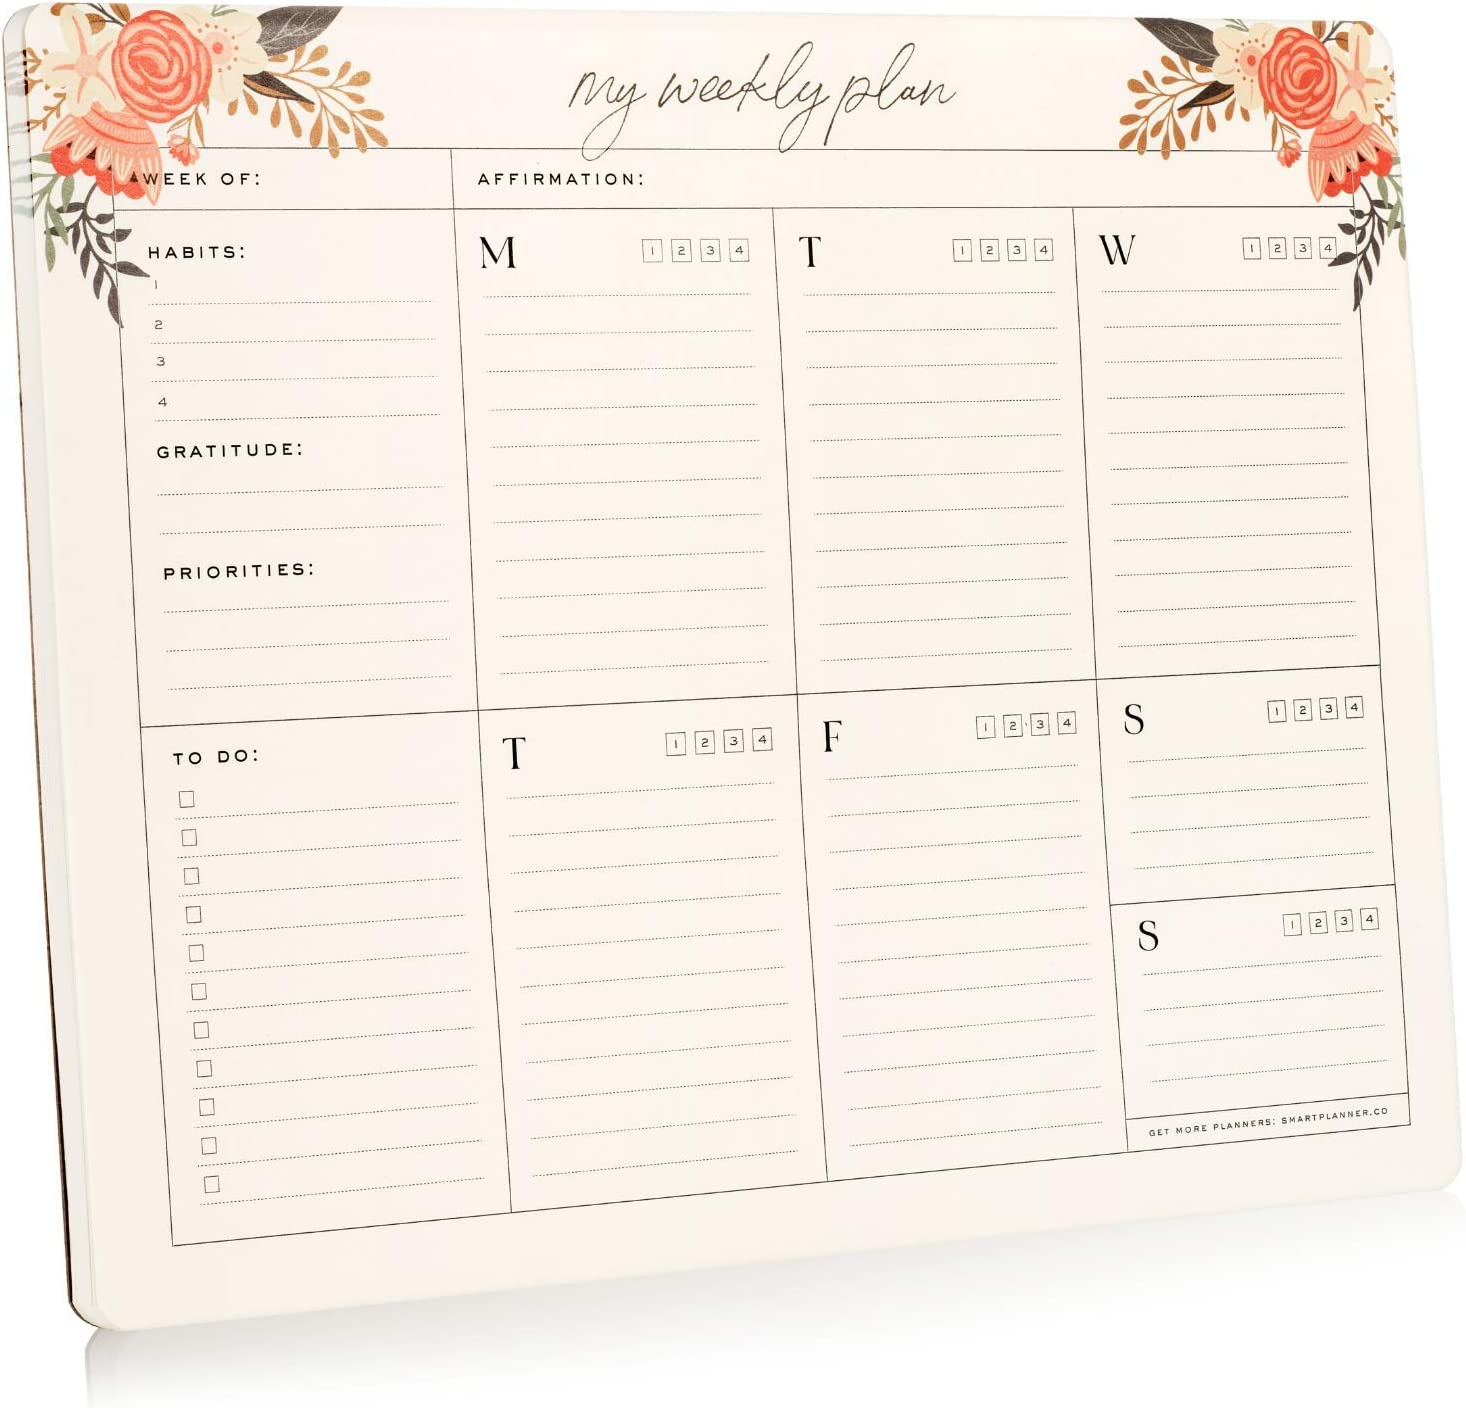 """Smart Planner Weekly Planner Pad - to Do List Notepad - 52 Undated 100gsm Thick Tear-Off Sheets – Size 8.5"""" x 11"""" – Daily Schedule, Habit Tracker, Gratitude & Priorities Sections"""